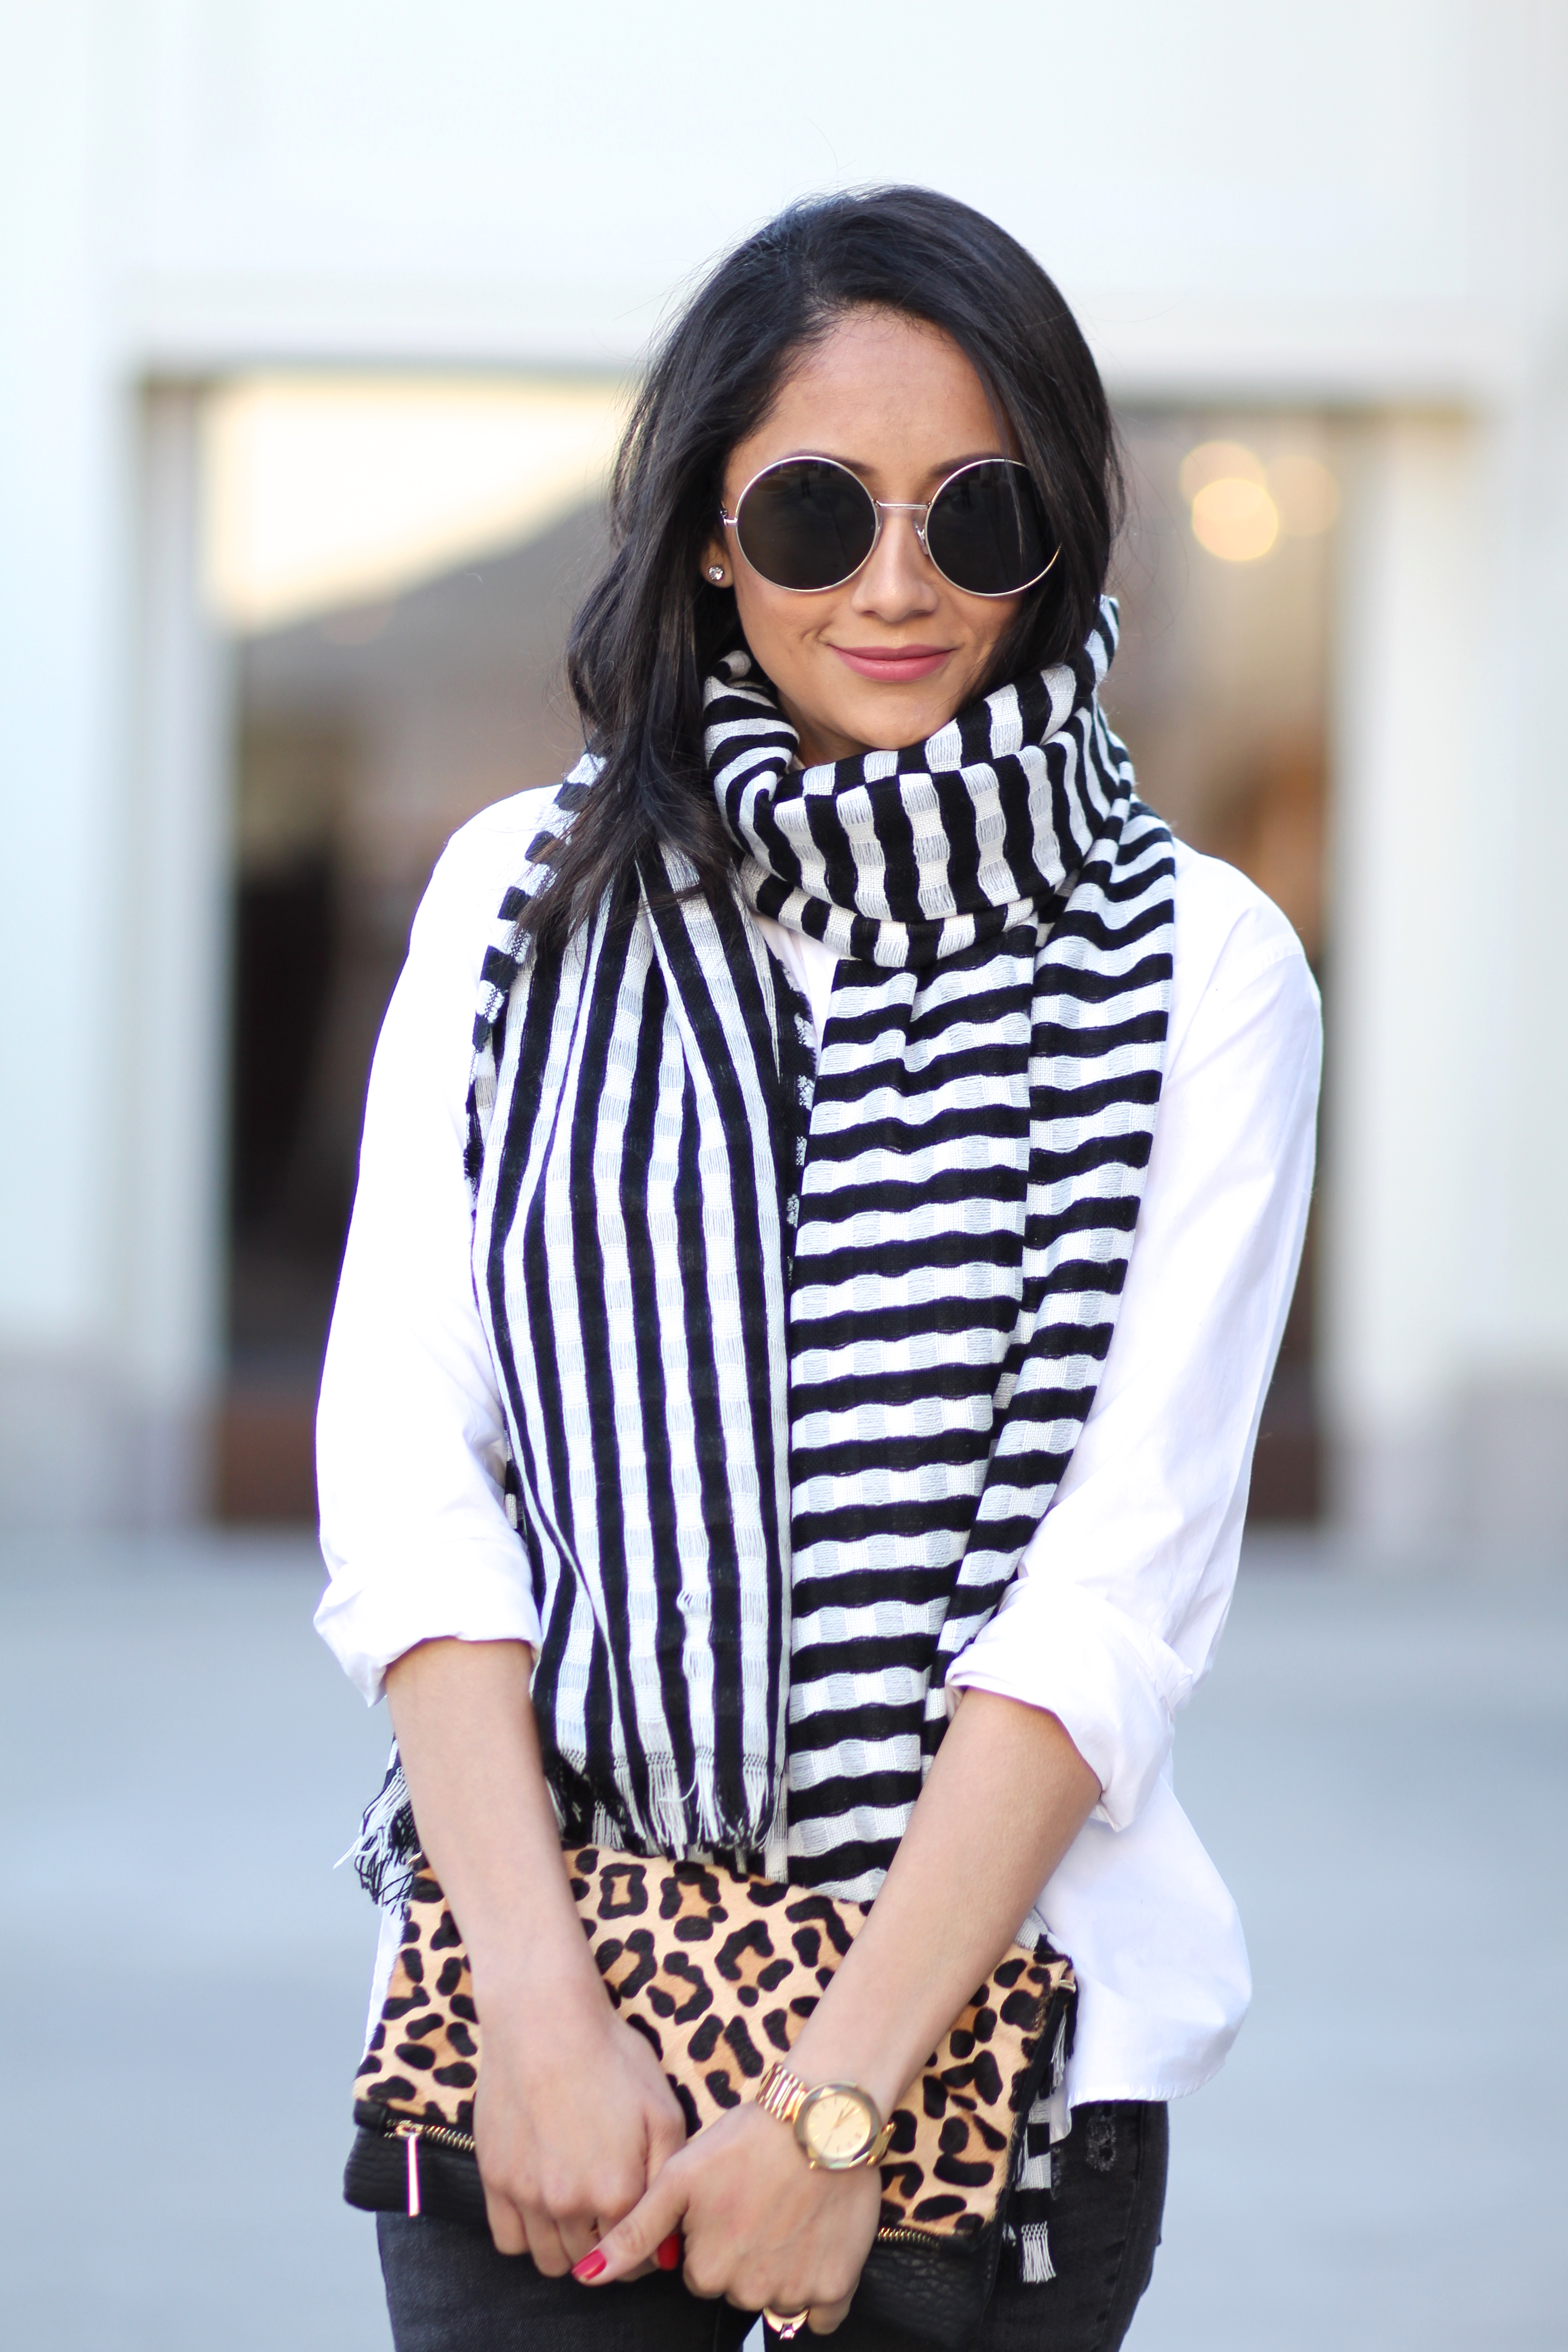 Lifestyle blogger Lilly Beltran wearing a striped scarf and round sunglasses